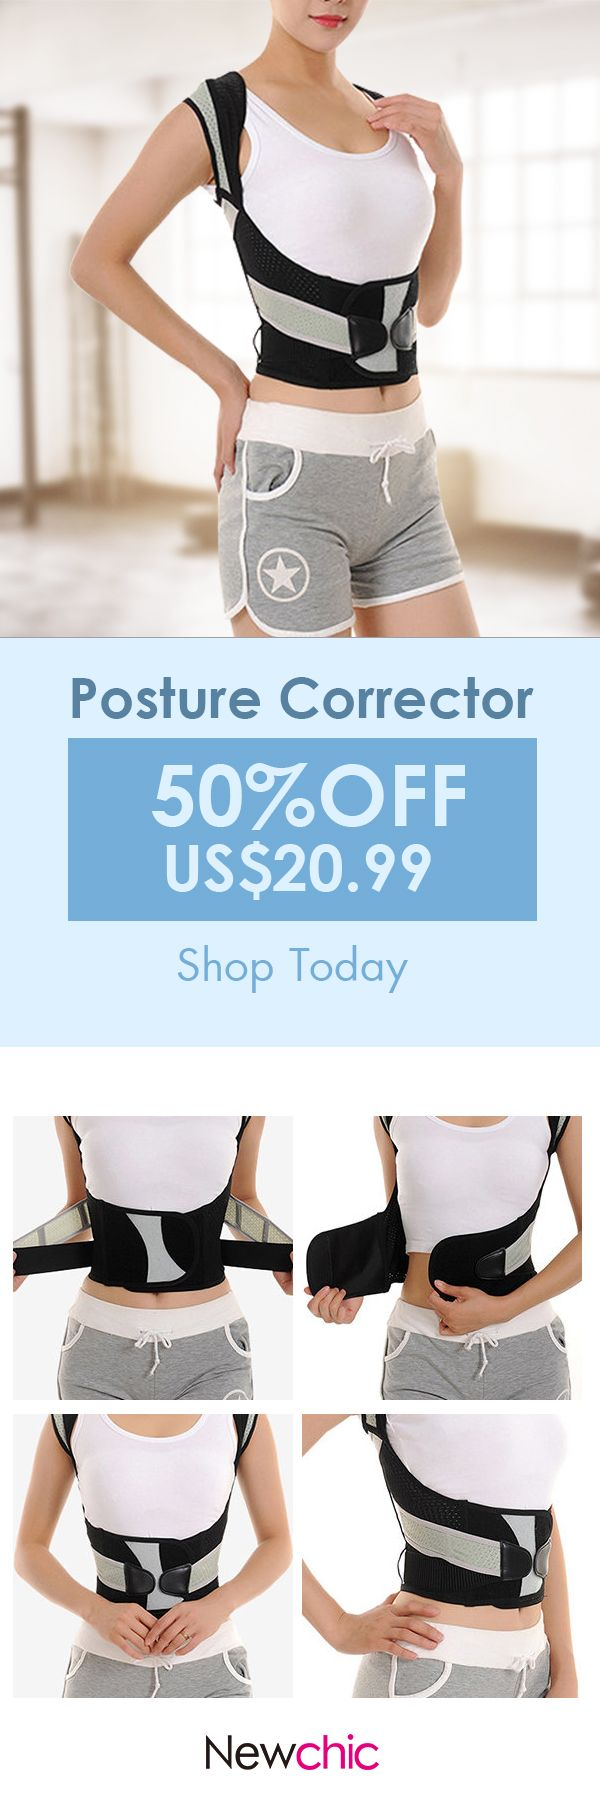 [Newchic Online Shopping] 50%OFF Posture Corrector